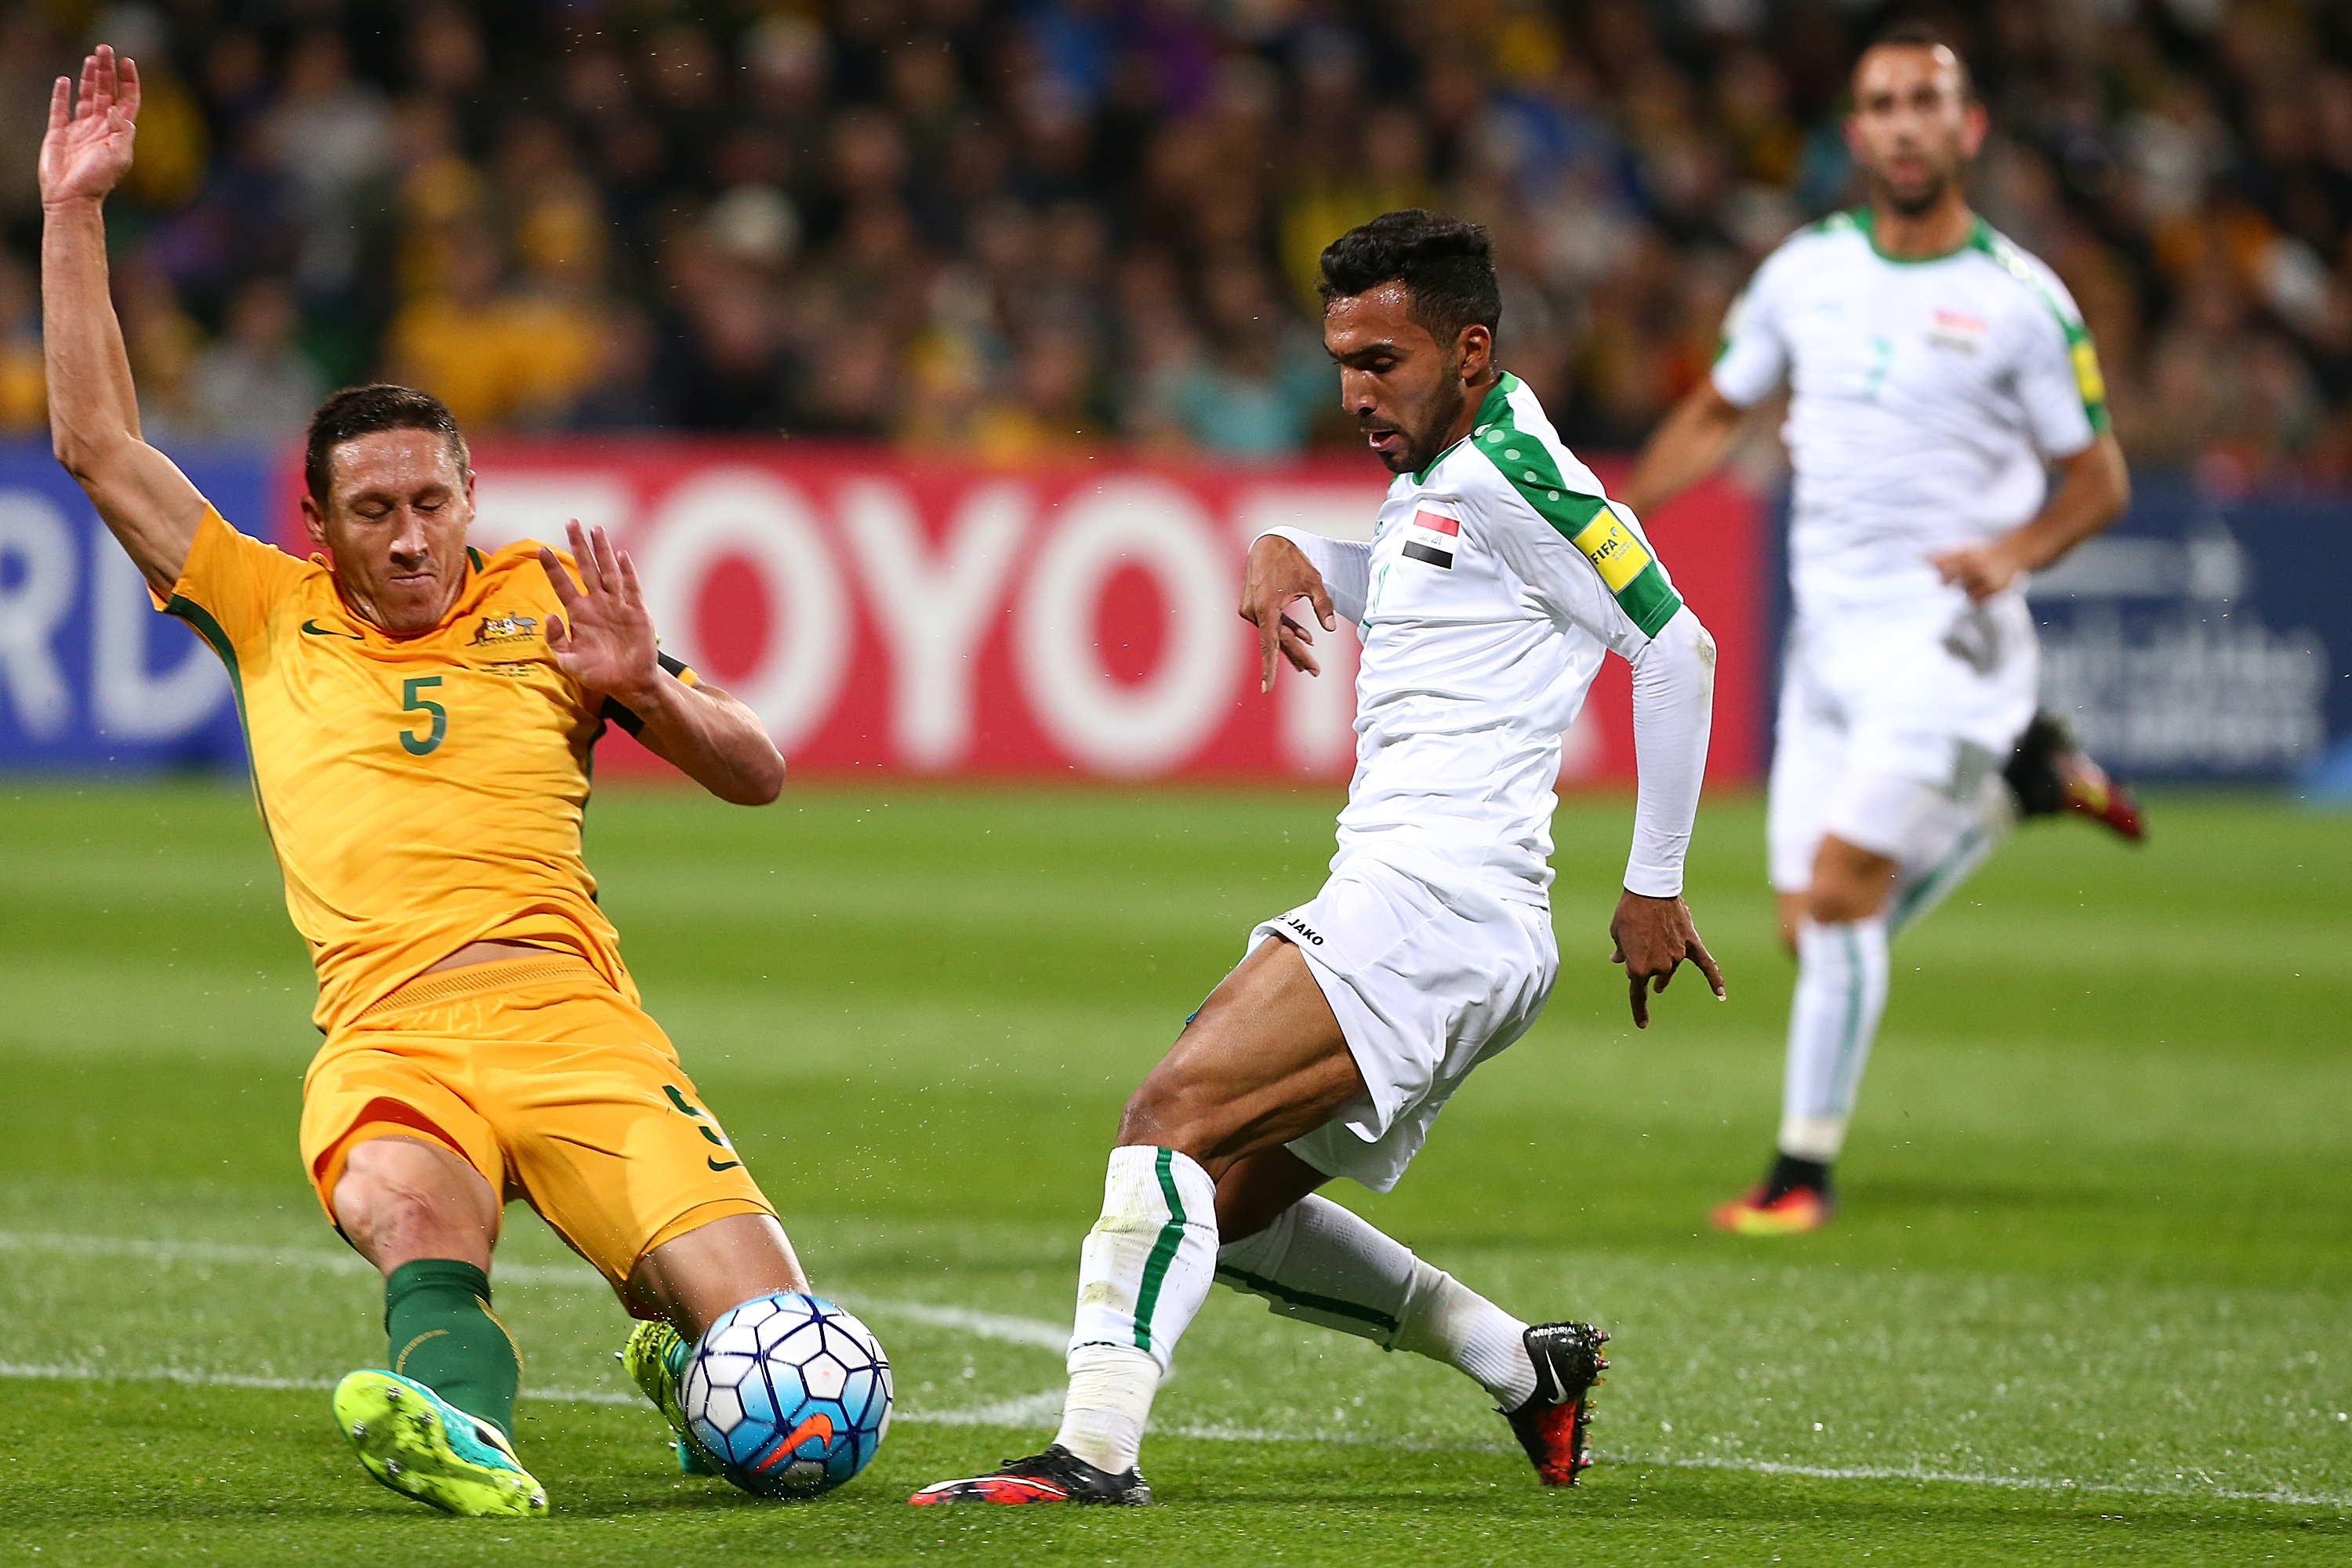 Iraq threatened on the counter attack with Mark Milligan forced into a desperate challenge on Ali Hisny Faisal.